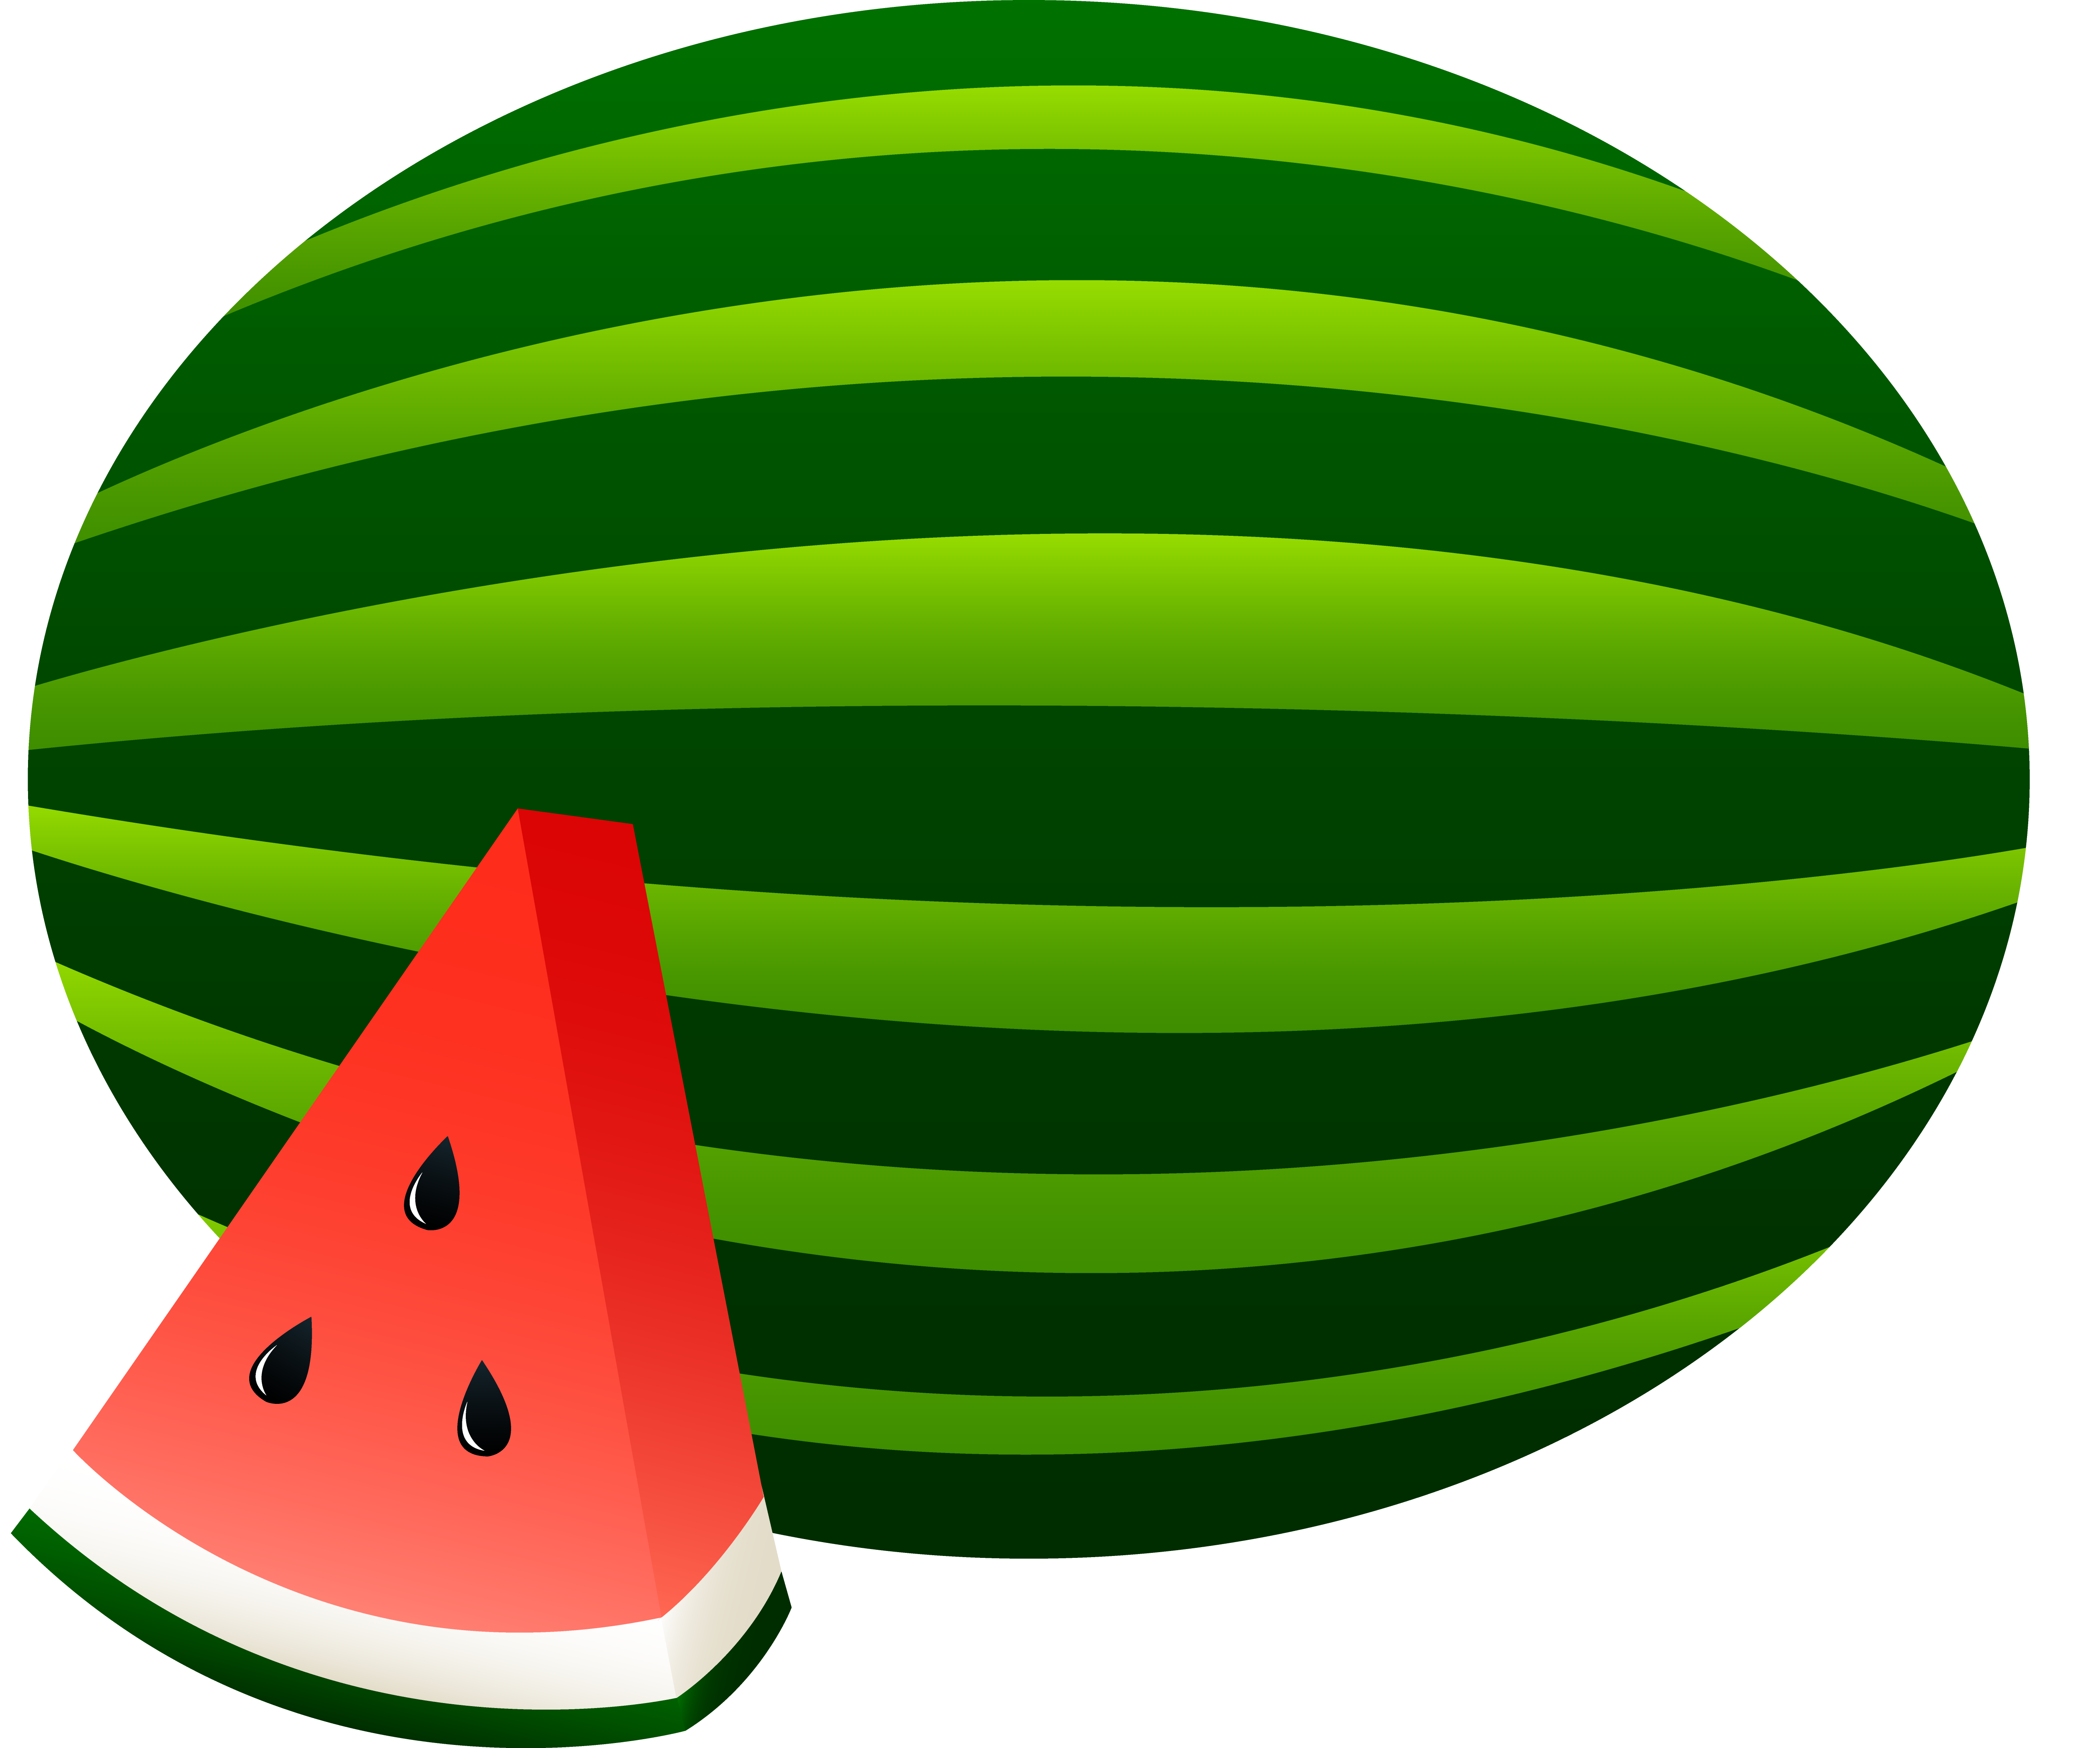 Watermelon clipart juicy watermelon. Whole and slice free